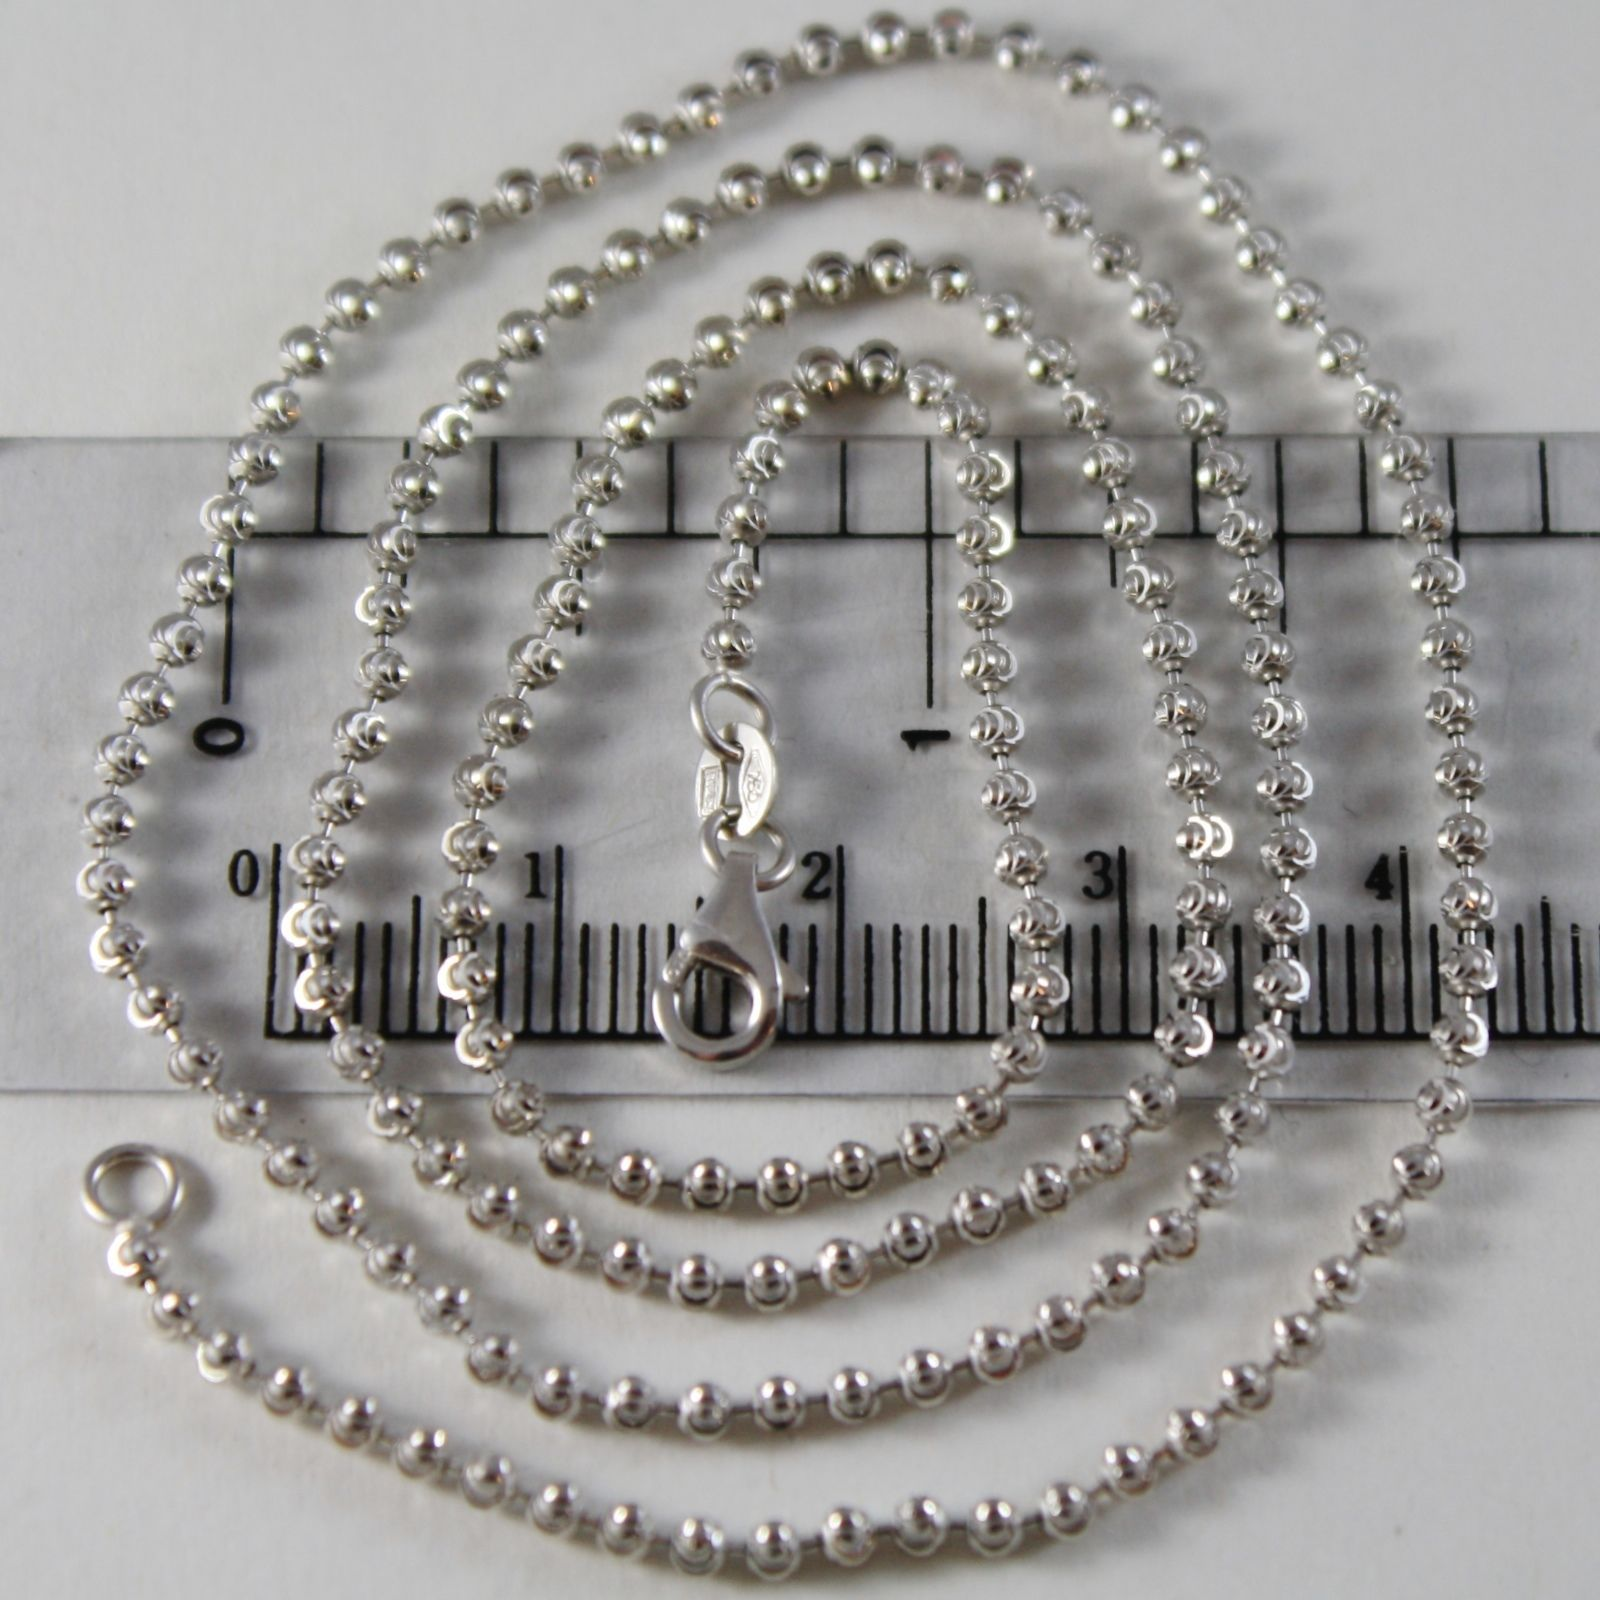 18K WHITE GOLD CHAIN FINELY WORKED BALLS BALL SPHERES 2 MM, 15.45, MADE IN ITALY